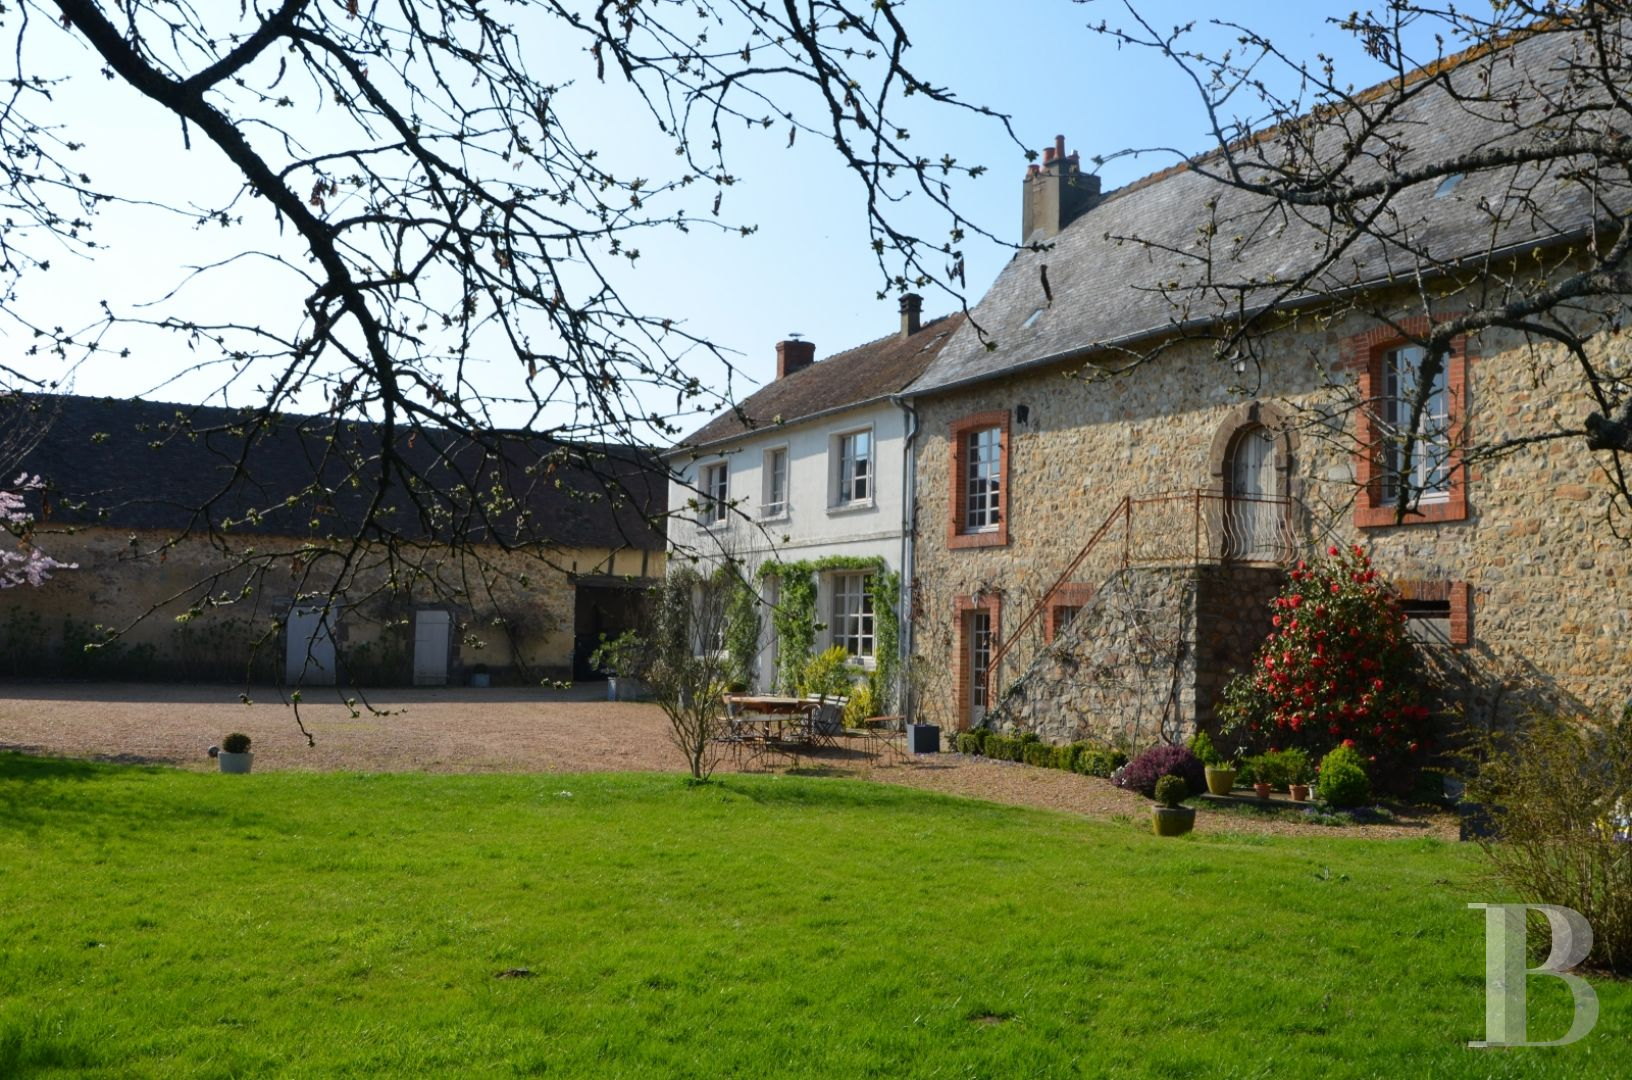 property for sale France pays de loire residences for - 10 zoom